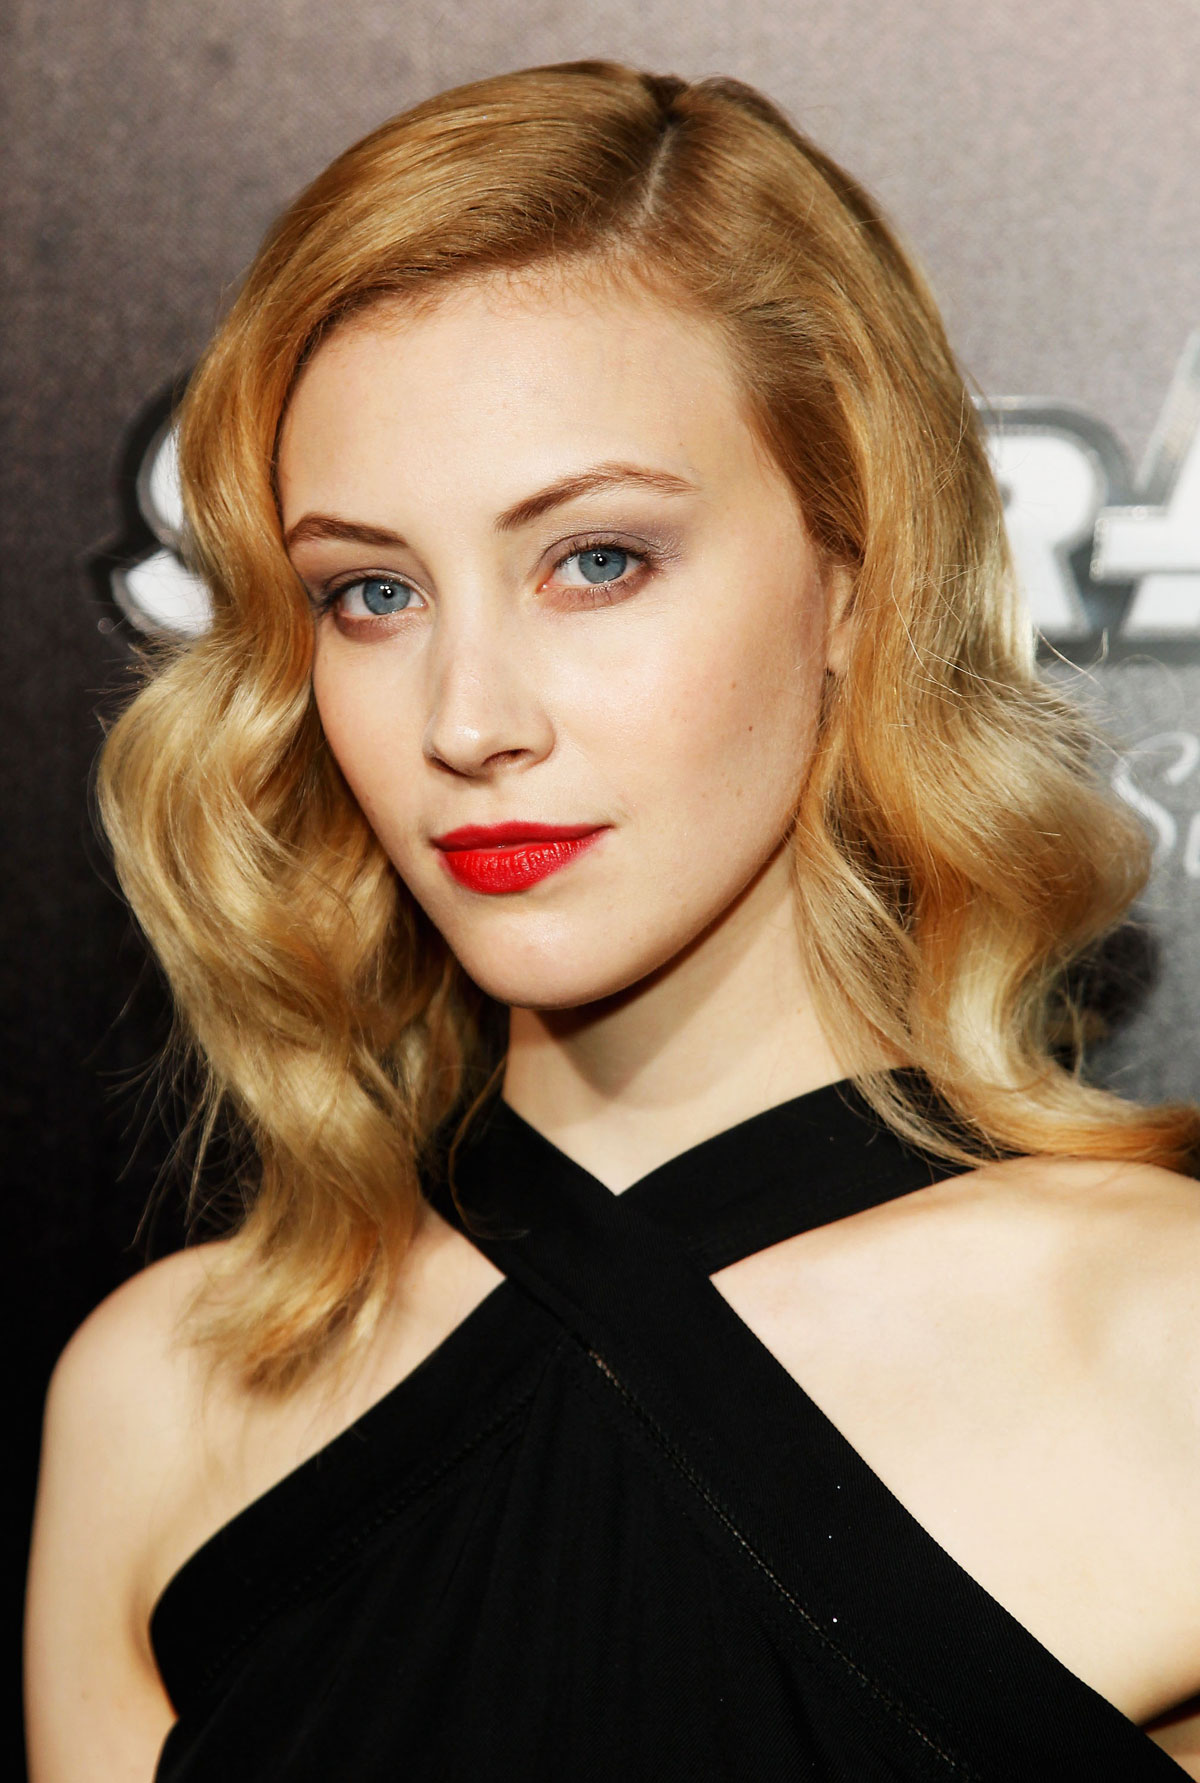 http://www.hawtcelebs.com/wp-content/uploads/2012/05/SARAH-GADON-at-amfAR-Cinema-Against-AIDS-Benefit-at-Cannes-Film-Festival-5.jpg